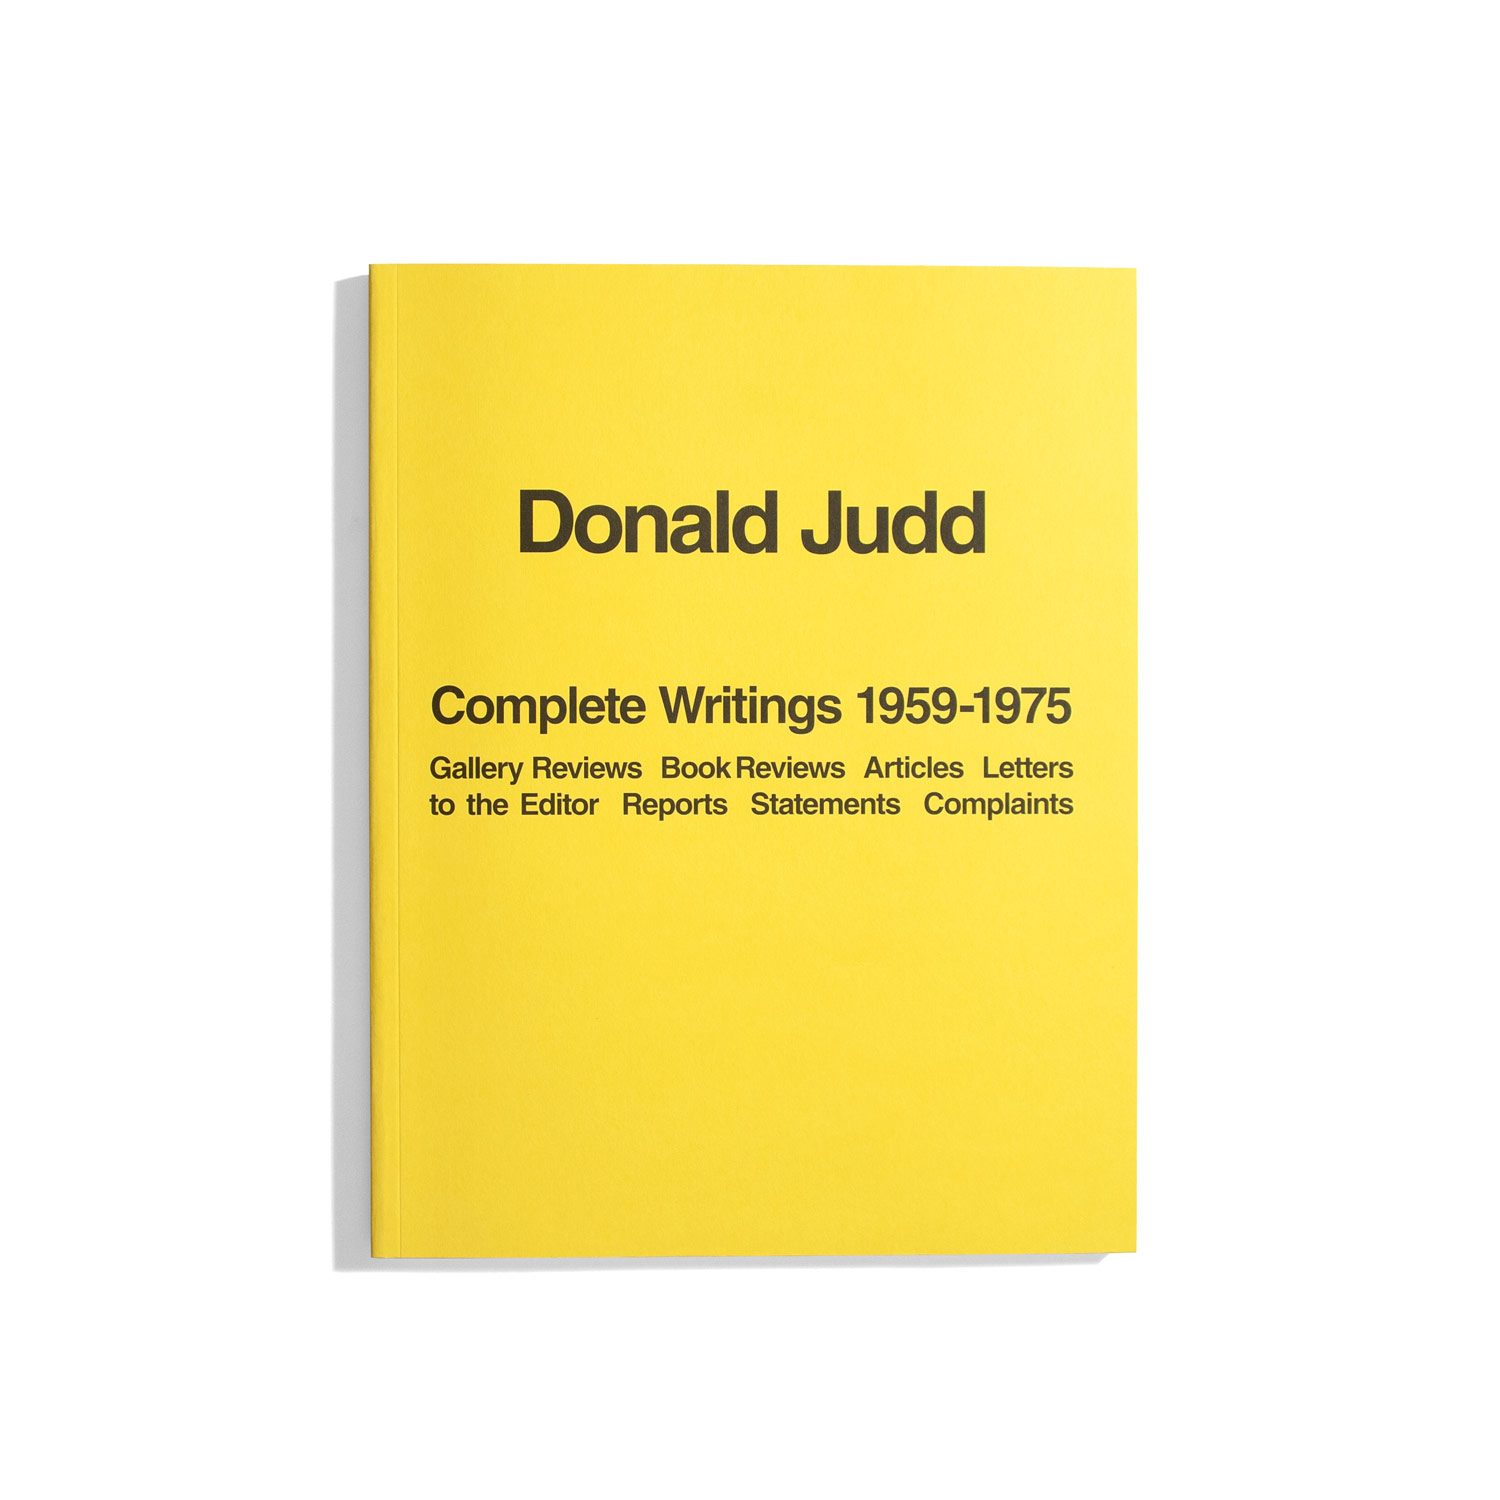 Donald Judd - Complete Writings 1959-1975